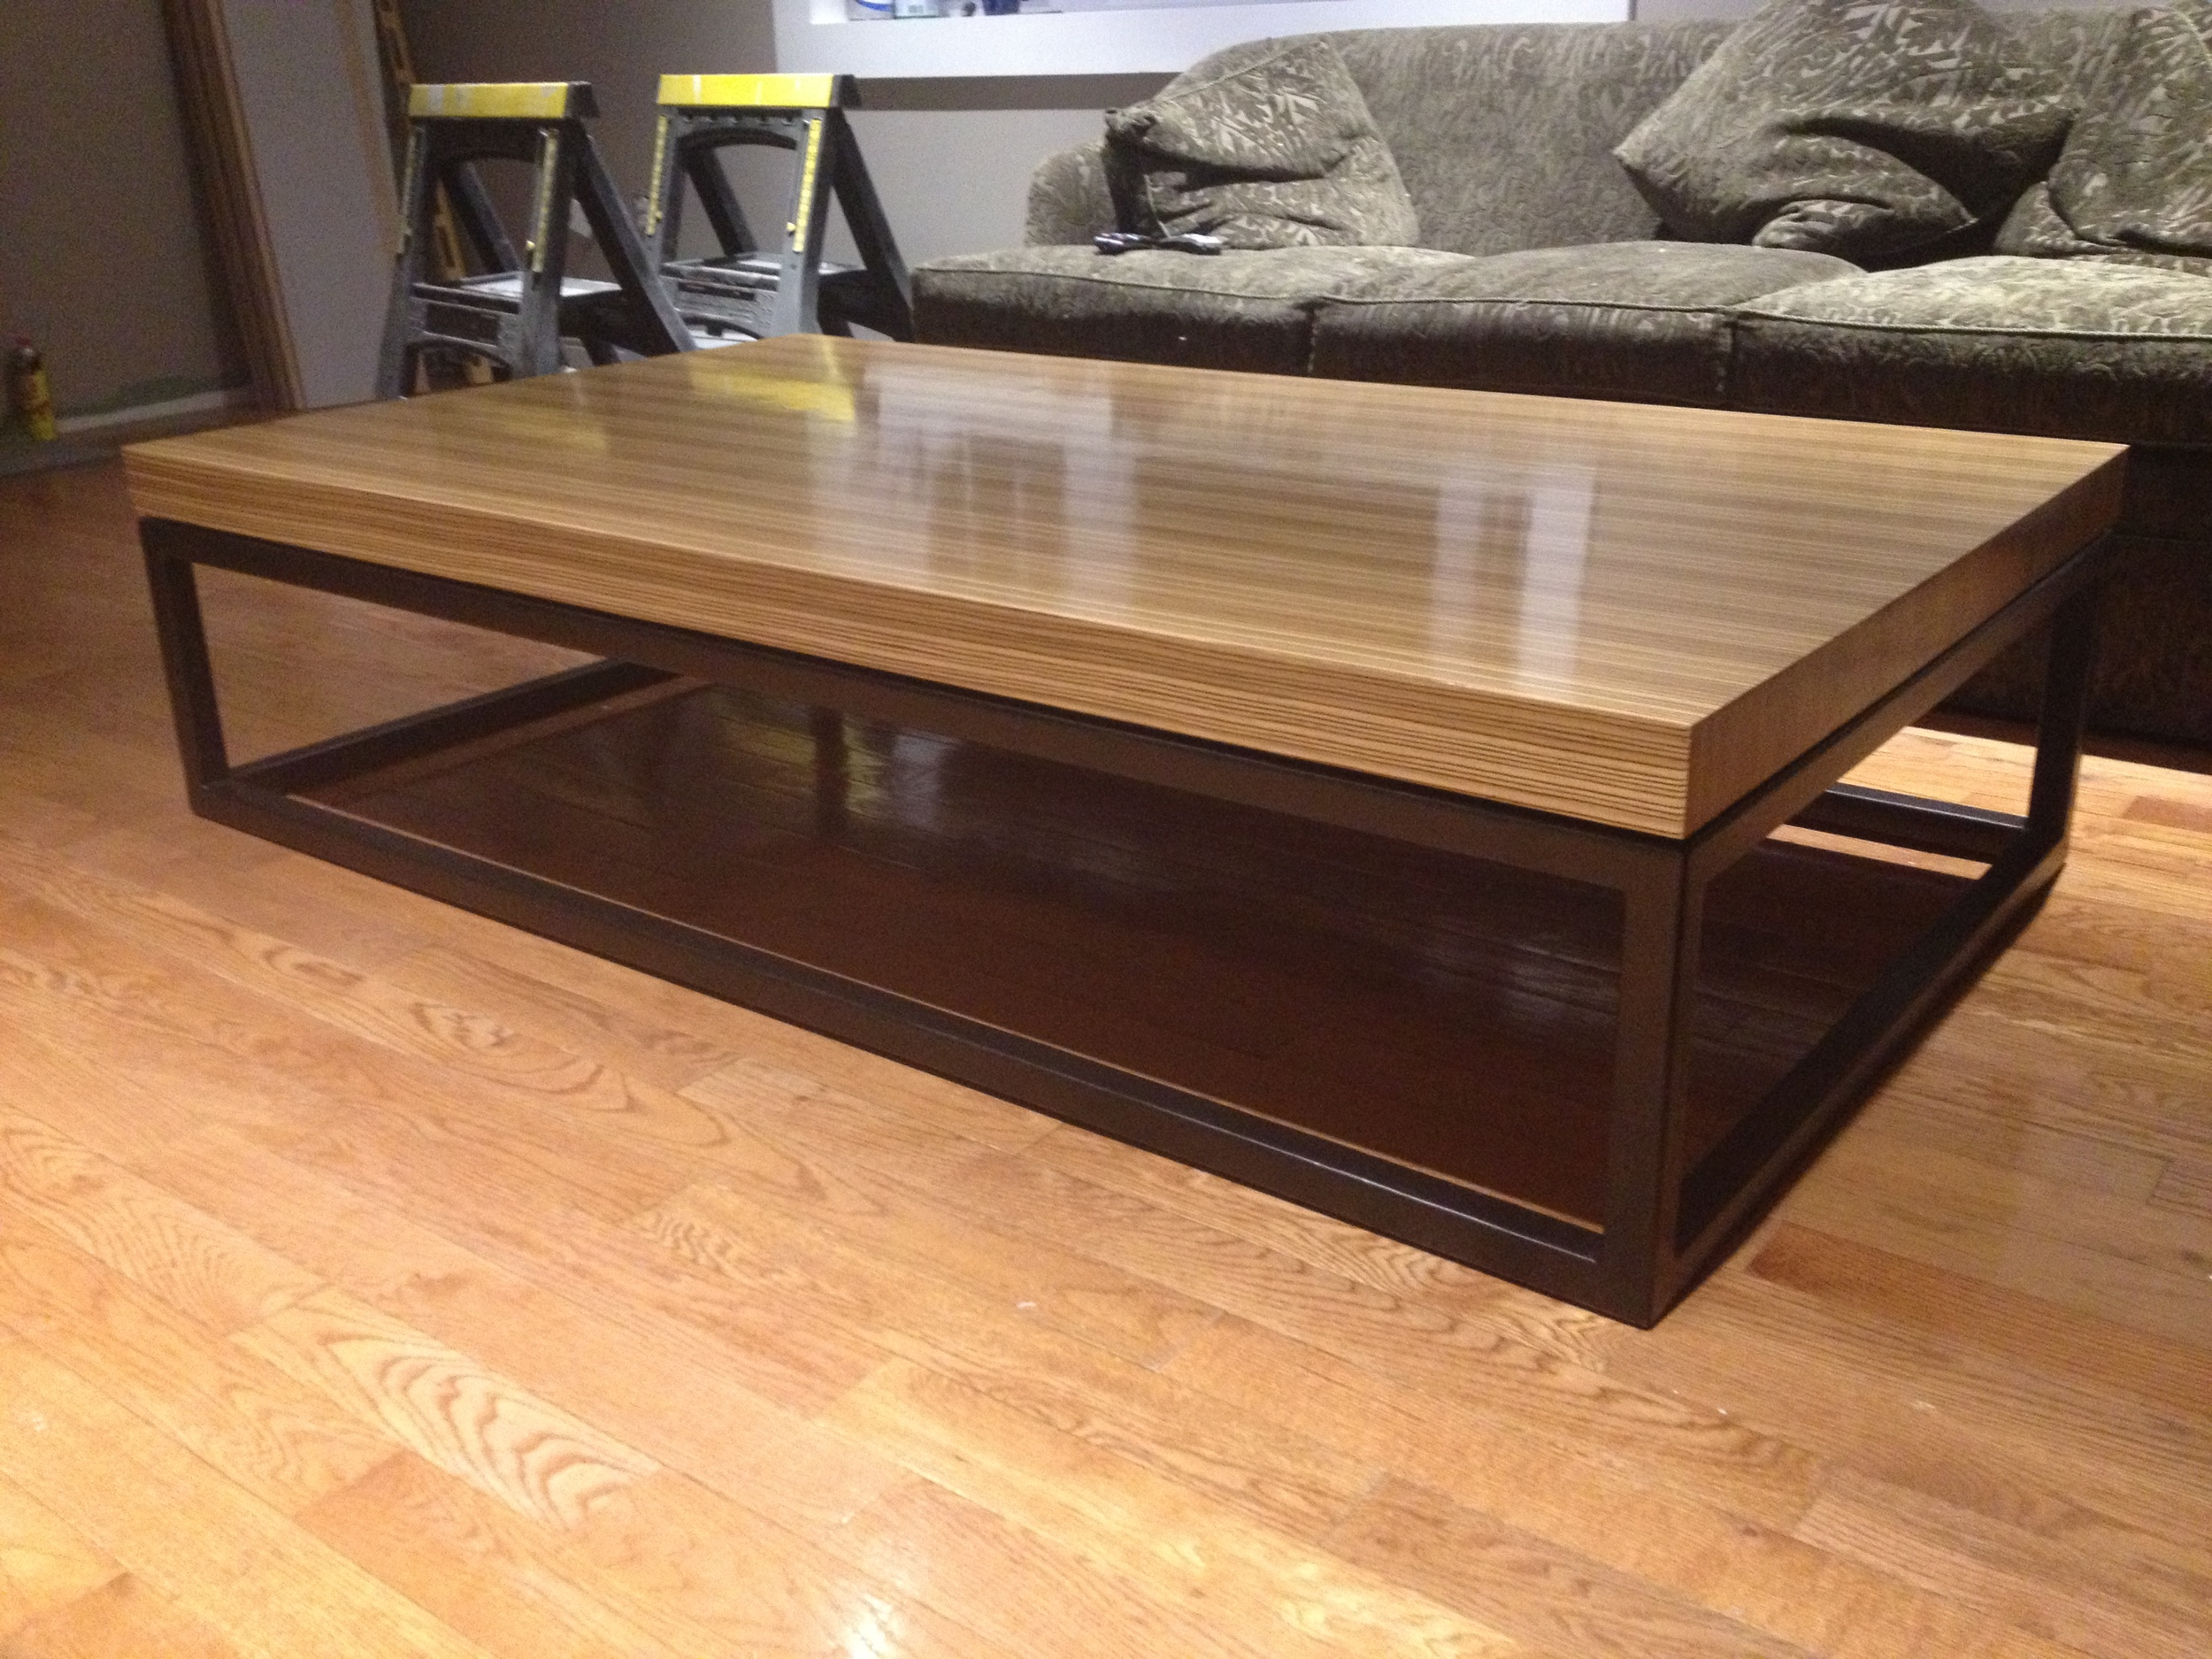 zebra wood top with oil rubbed bronze metal base (2).JPG